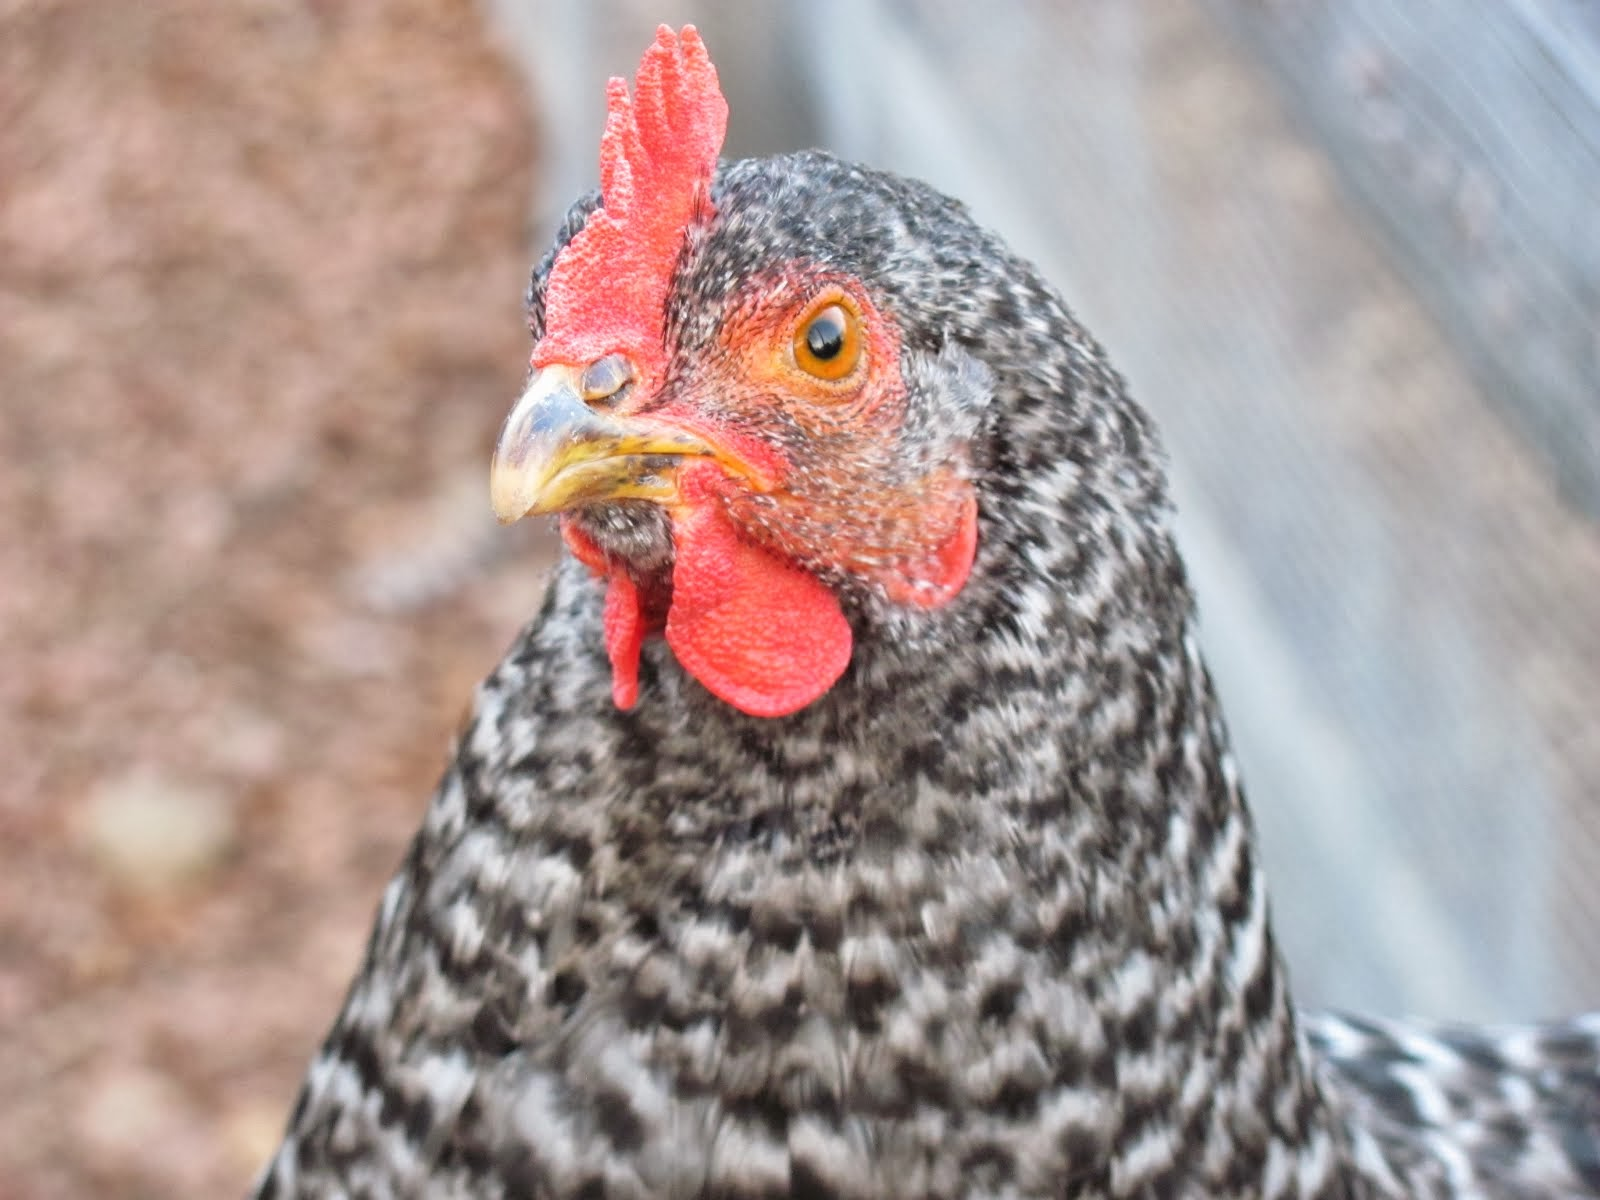 Luna the Barred Rock